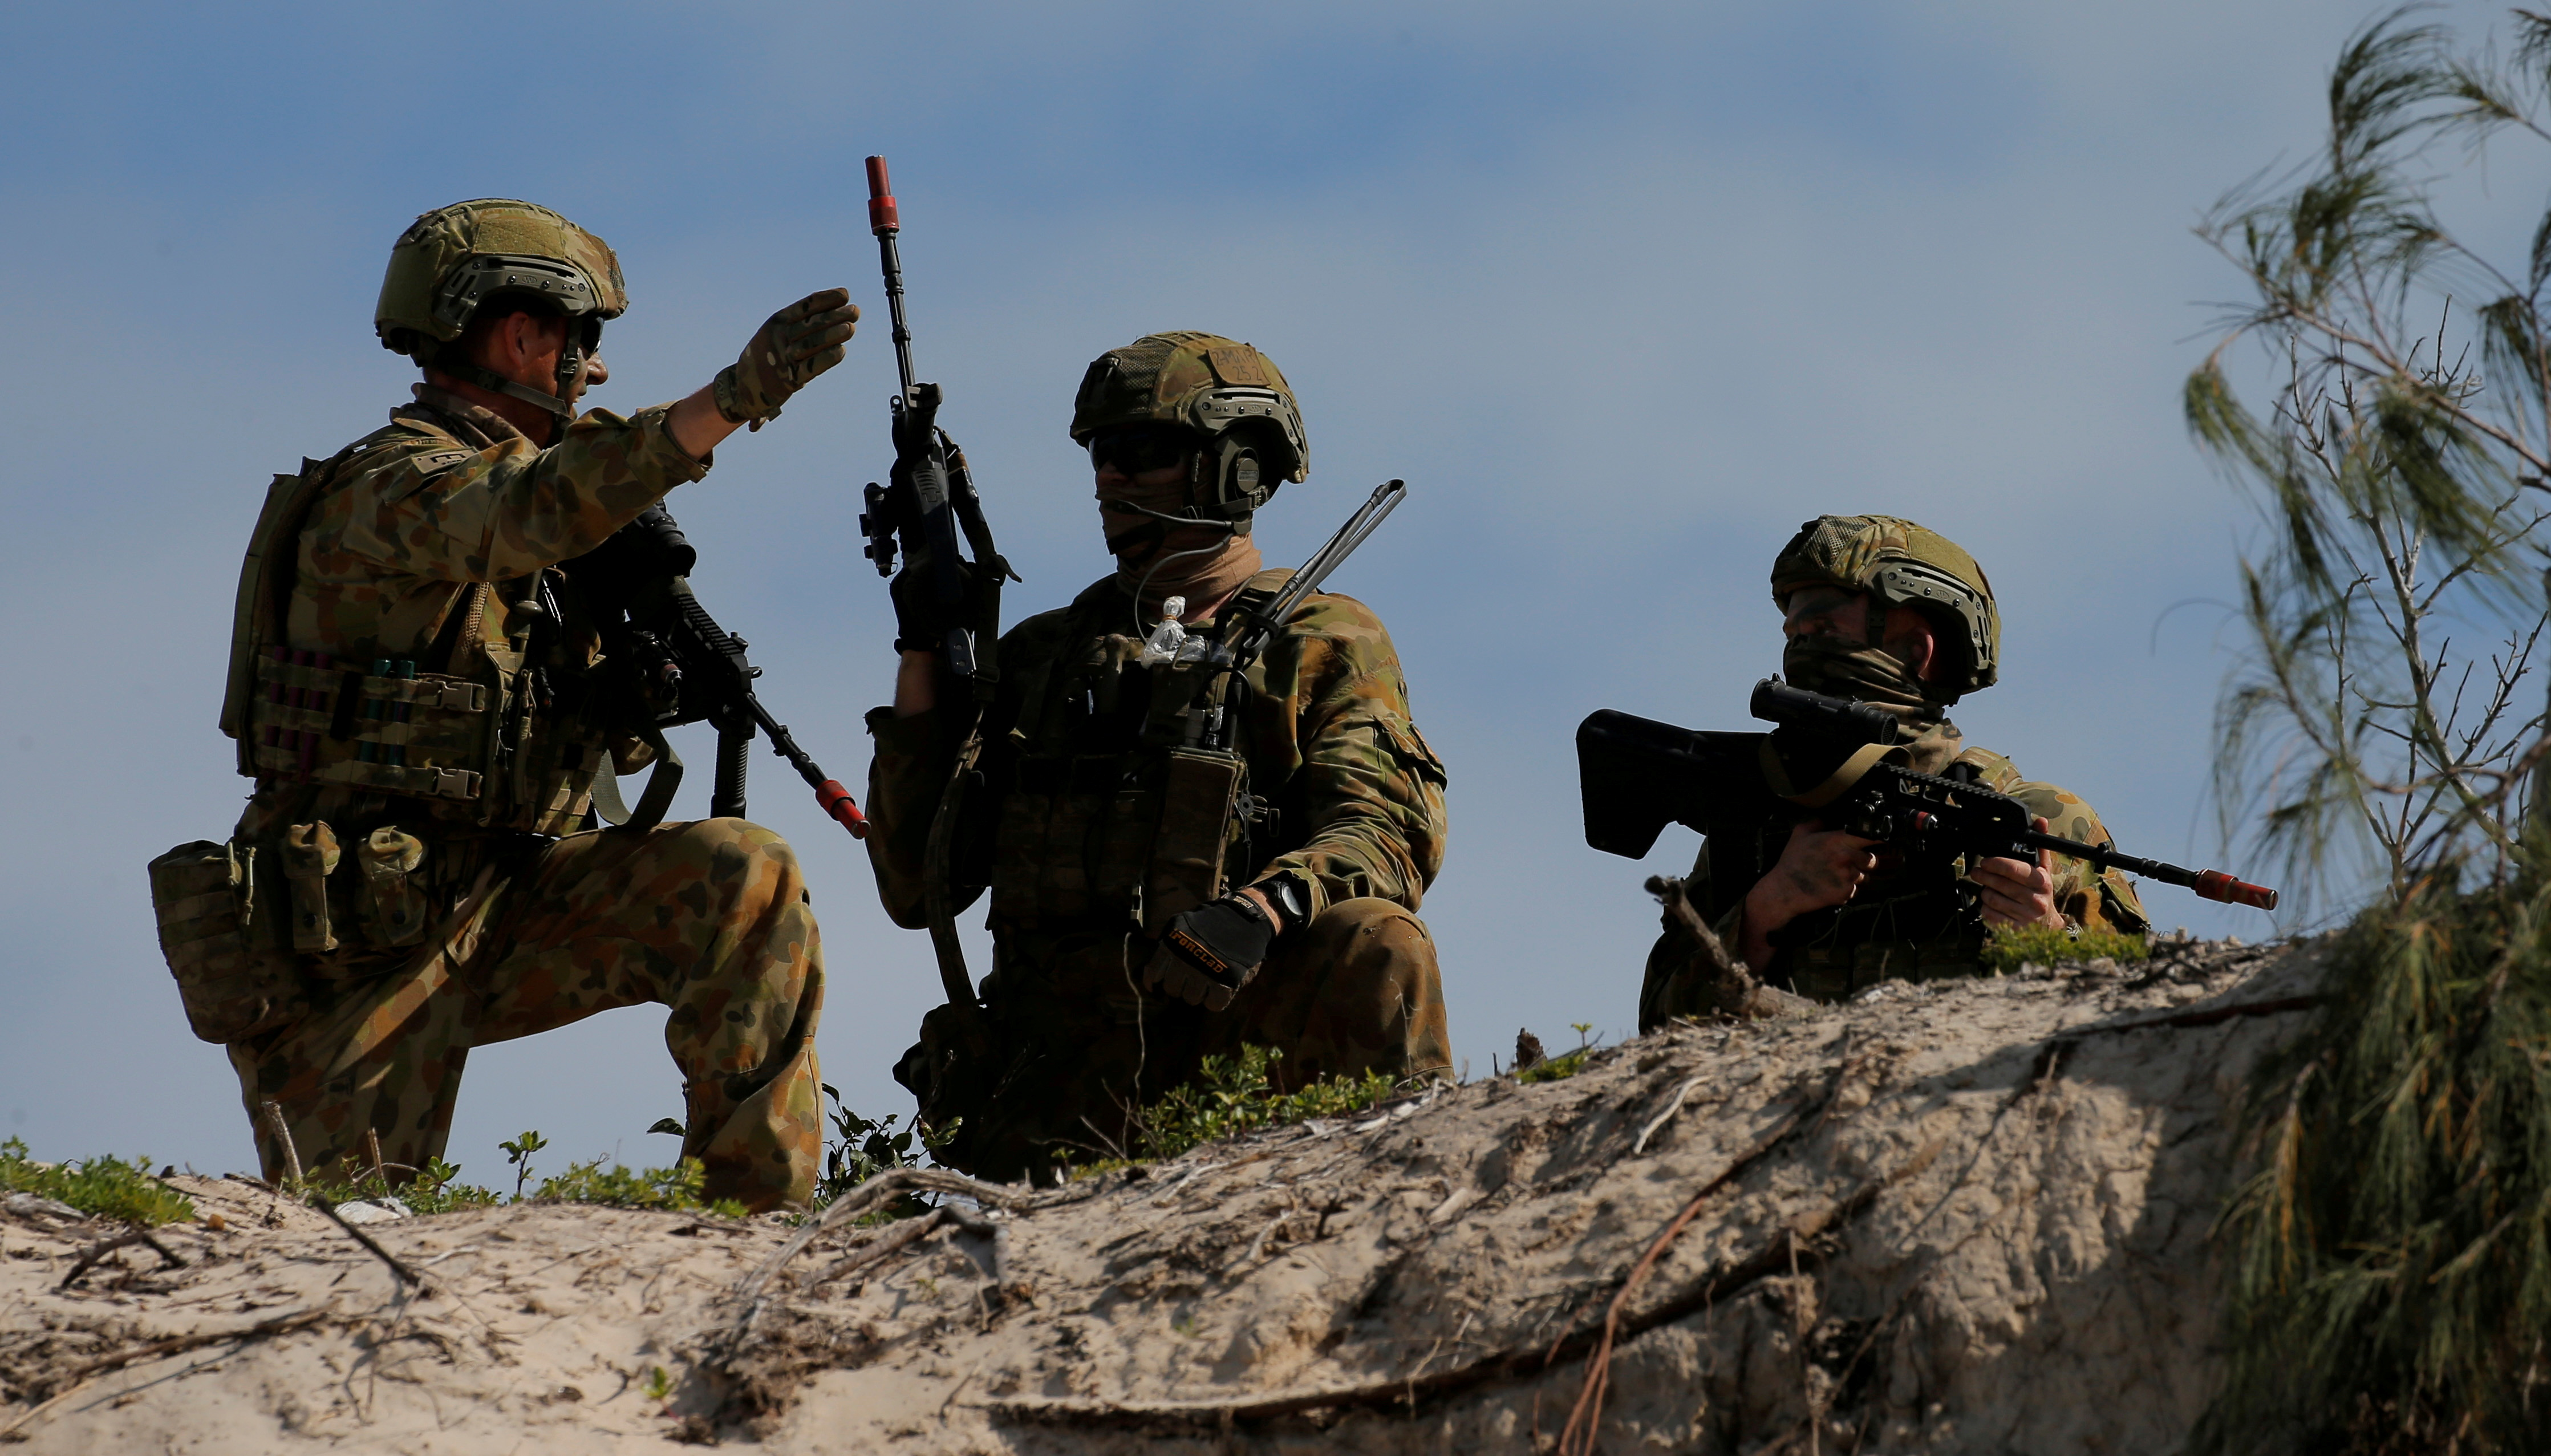 Soldiers from the Australian Army's 3rd Brigade guard Langham Beach after an amphibious assault landing during the Talisman Saber joint military exercises between Australia and the United States in Queensland, northeast Australia, July 13, 2017.  REUTERS/Jason Reed/File Photo